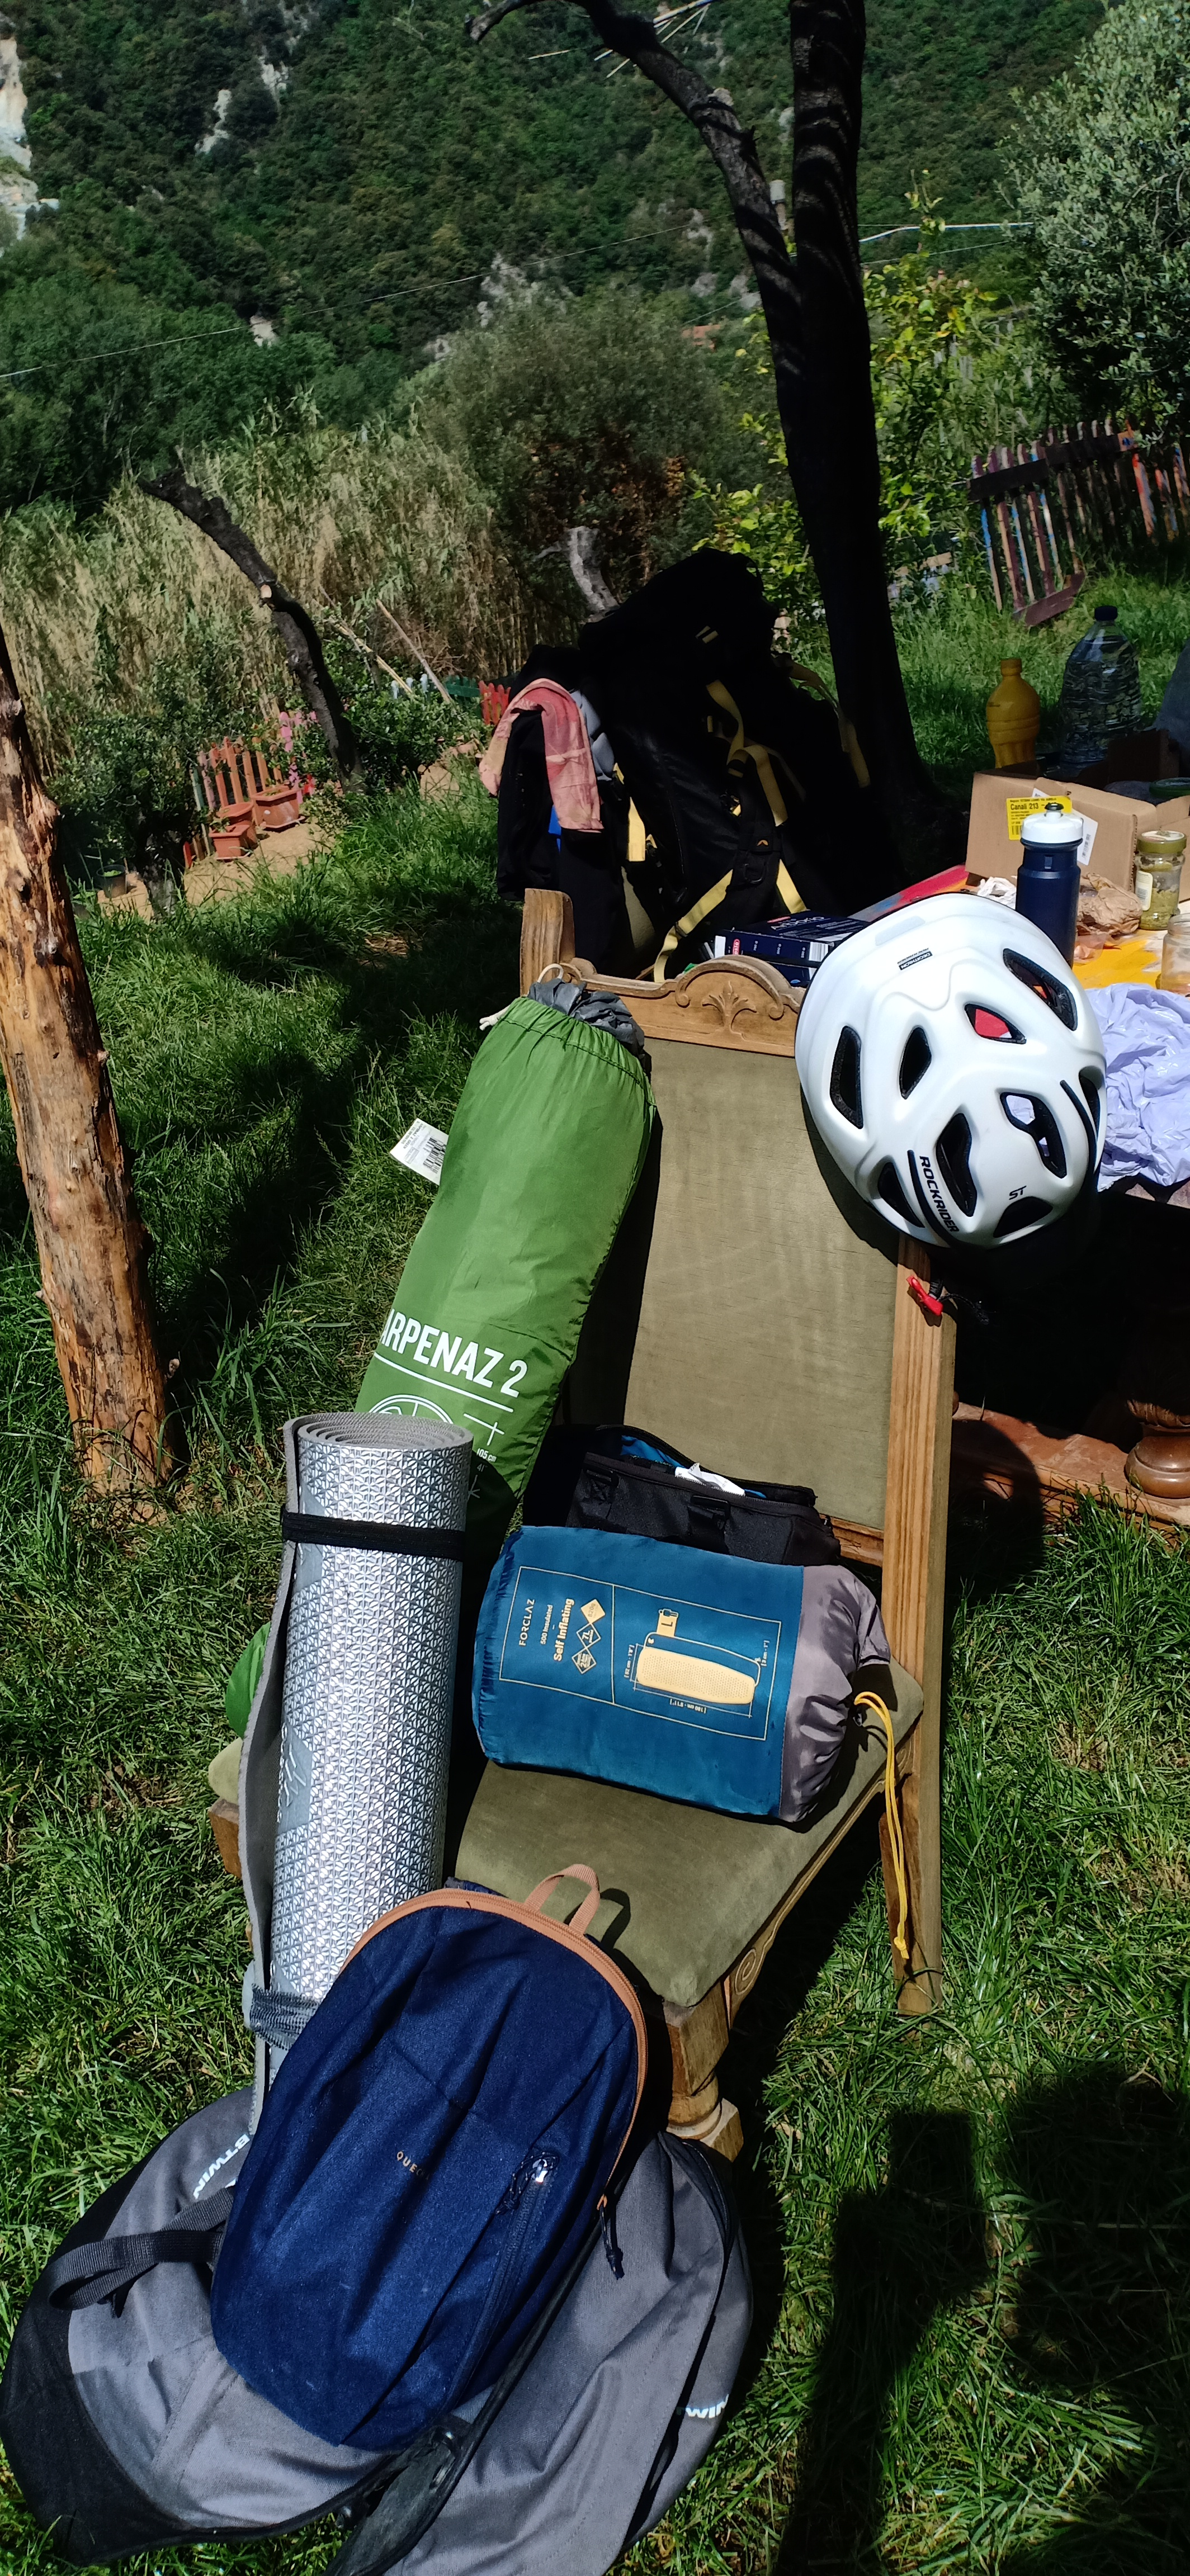 sports shoes dc917 51425 Second Hand Bike + Camping Gear - Rome early june ...